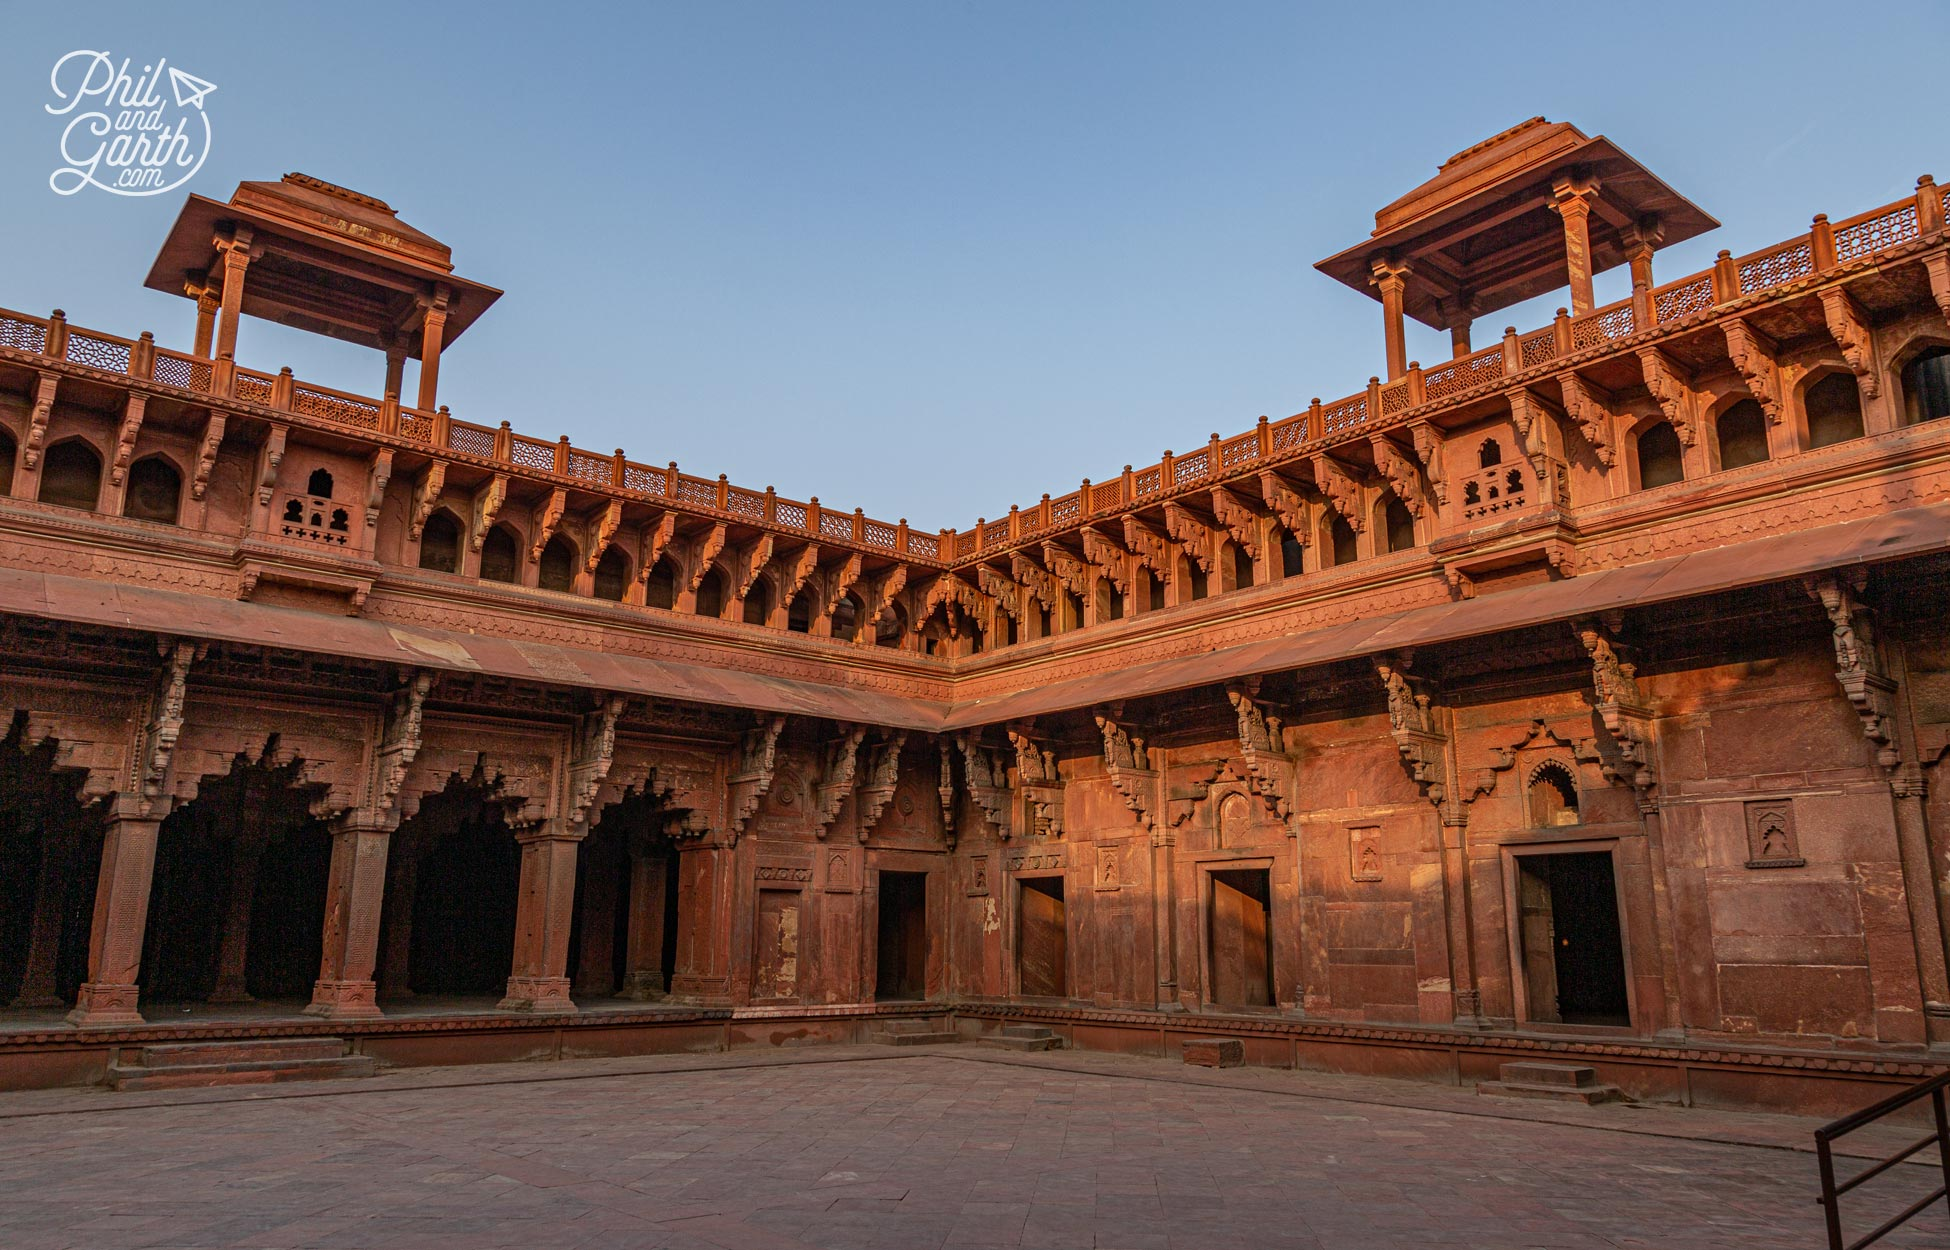 Hindu inspired architecture of the central courtyard within the Jahangiri Mahal Palace